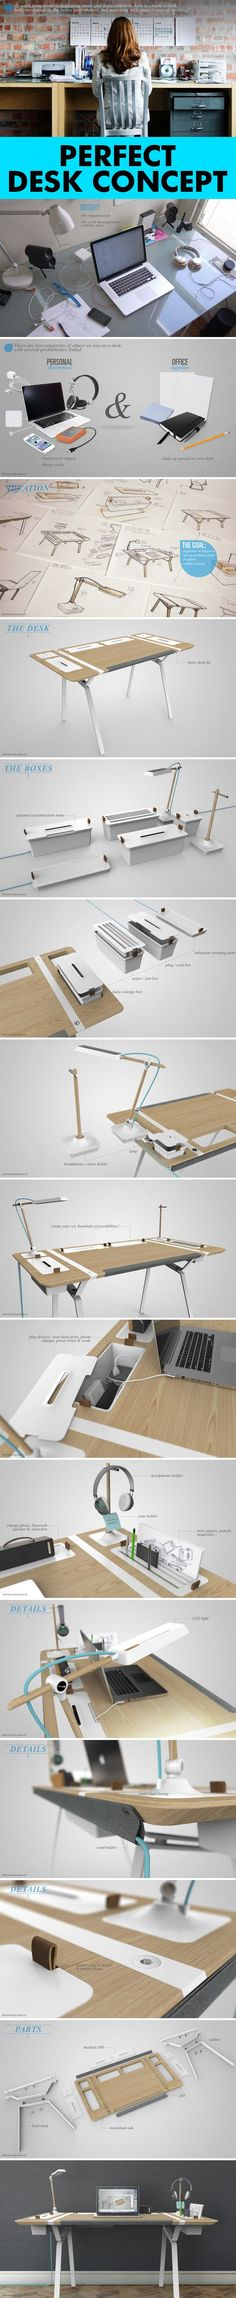 very-cool-desk-concept-by-francois-dransart-via-behance-desk-behance.jpg 598×5.823 piksel